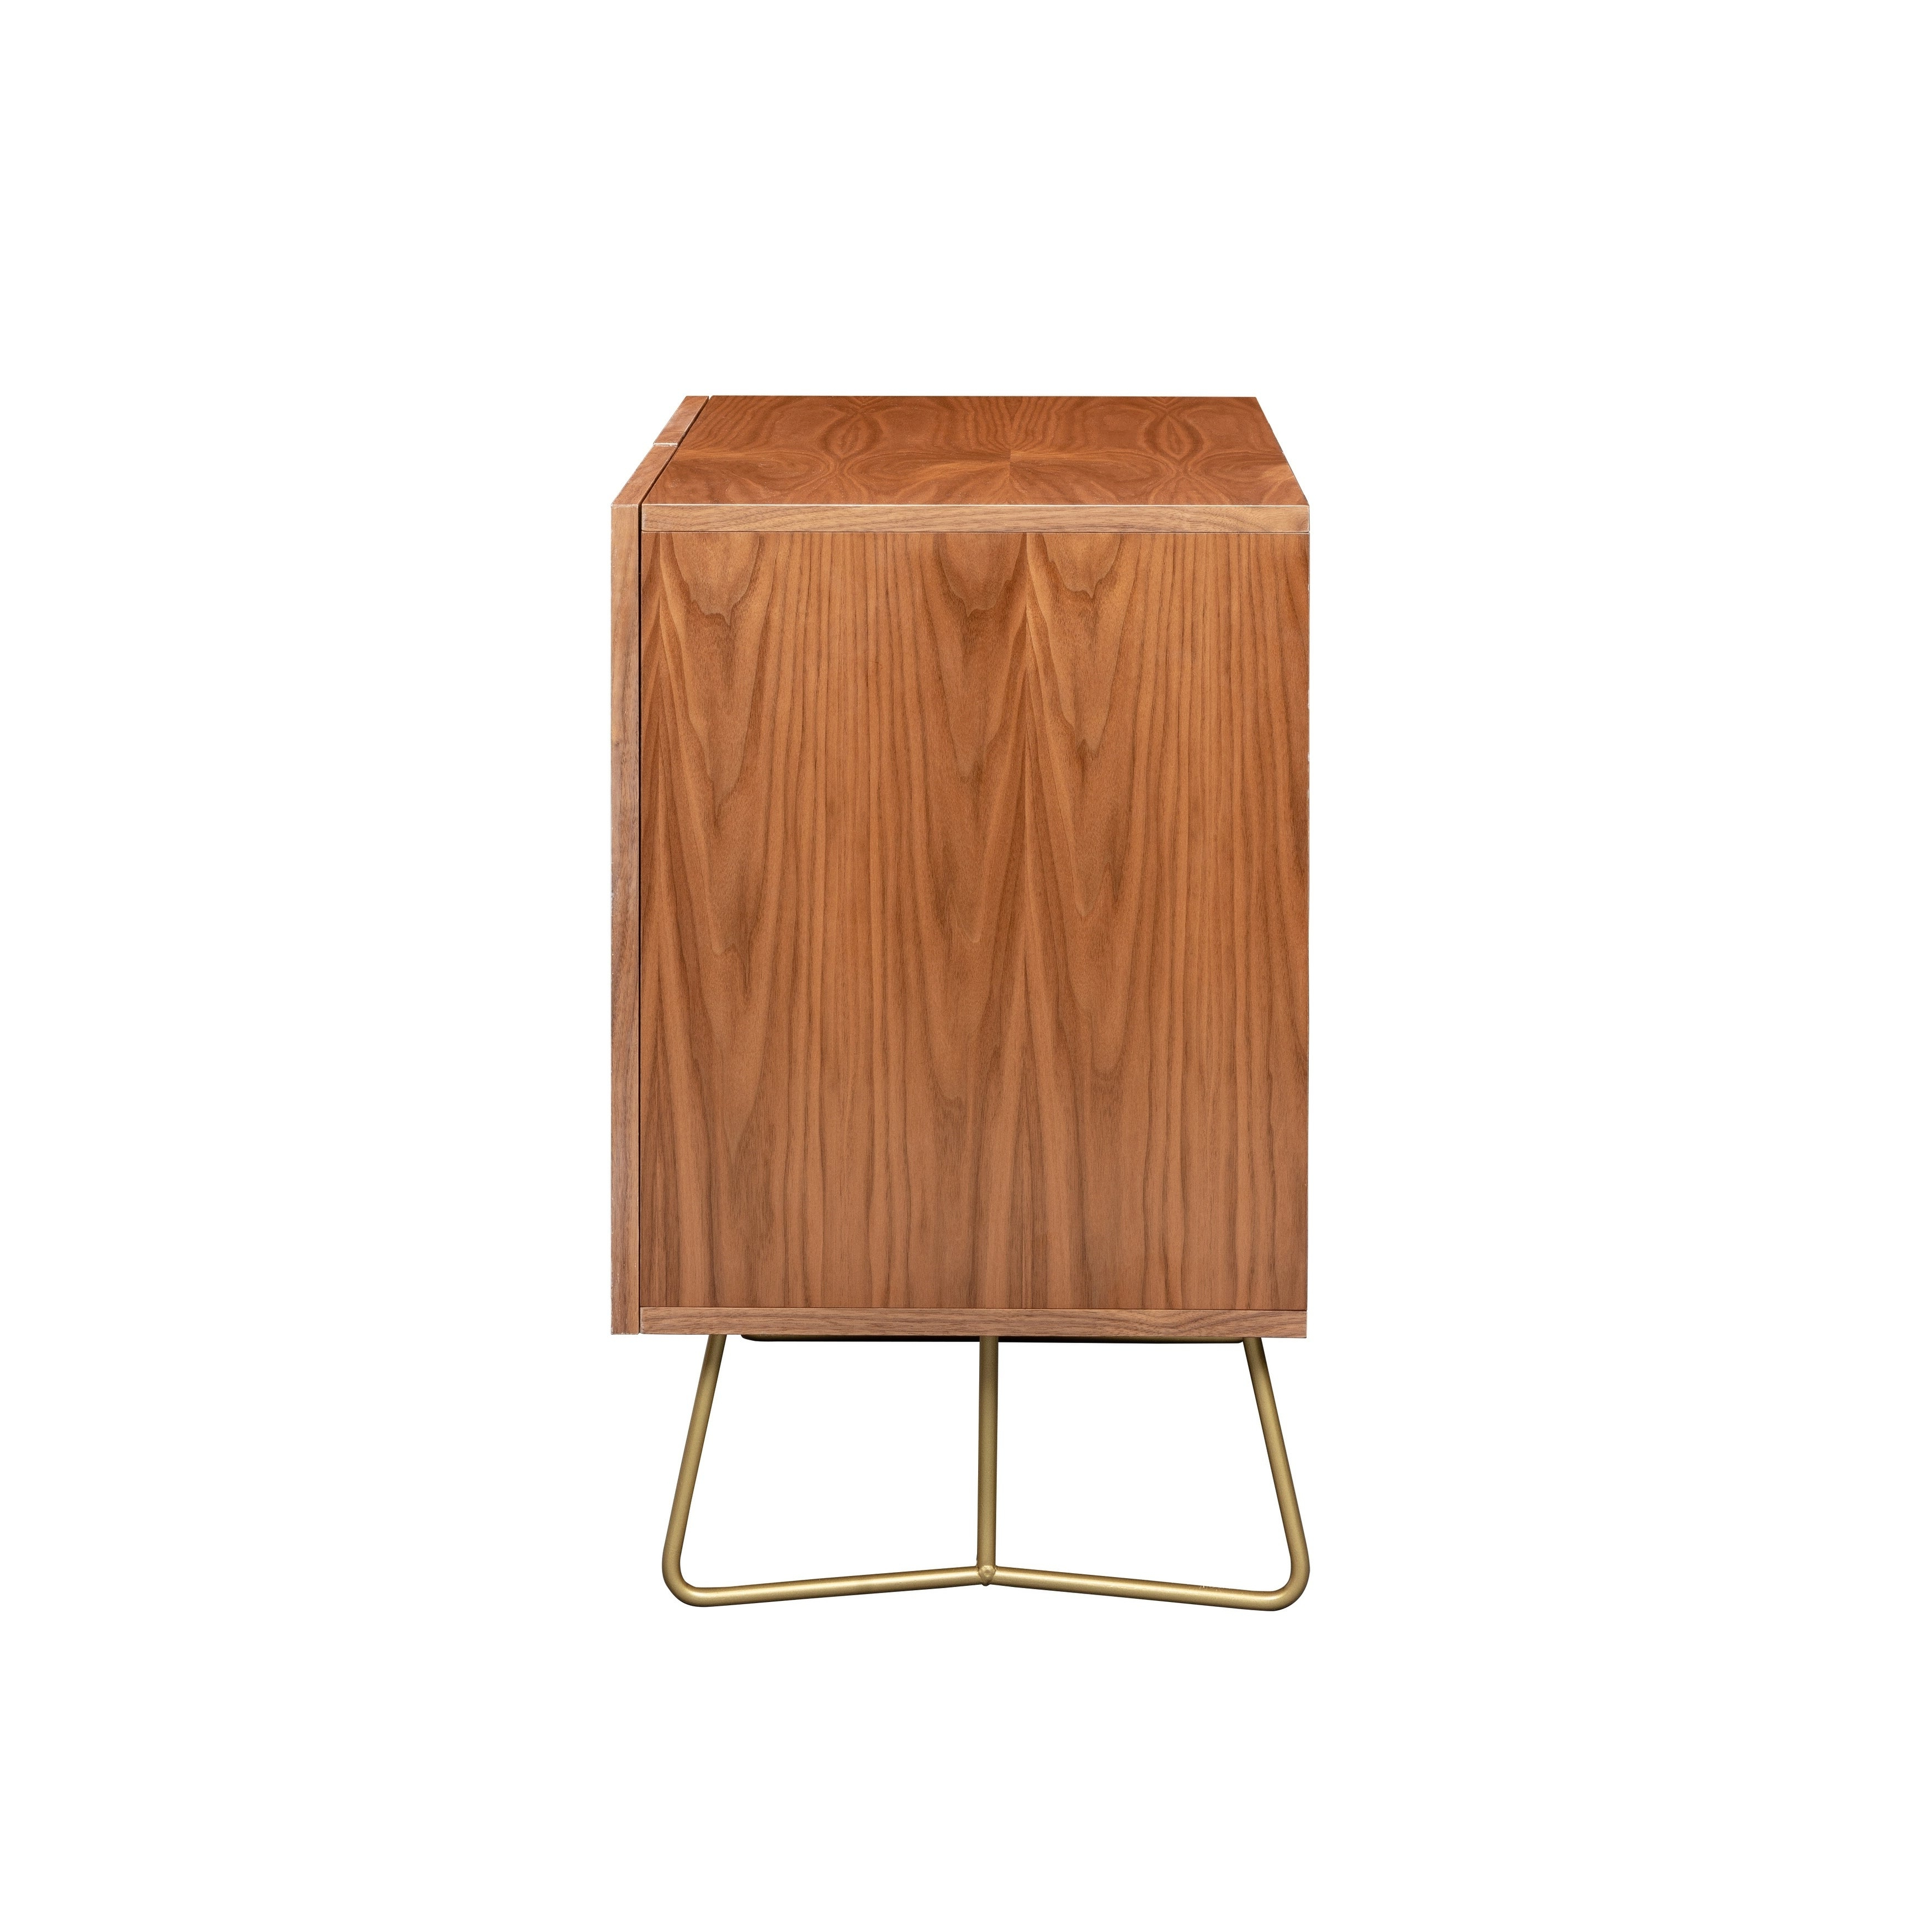 Deny Designs Colorful Leaves Credenza (Birch Or Walnut, 2 Leg Options) Within Colorful Leaves Credenzas (View 12 of 20)